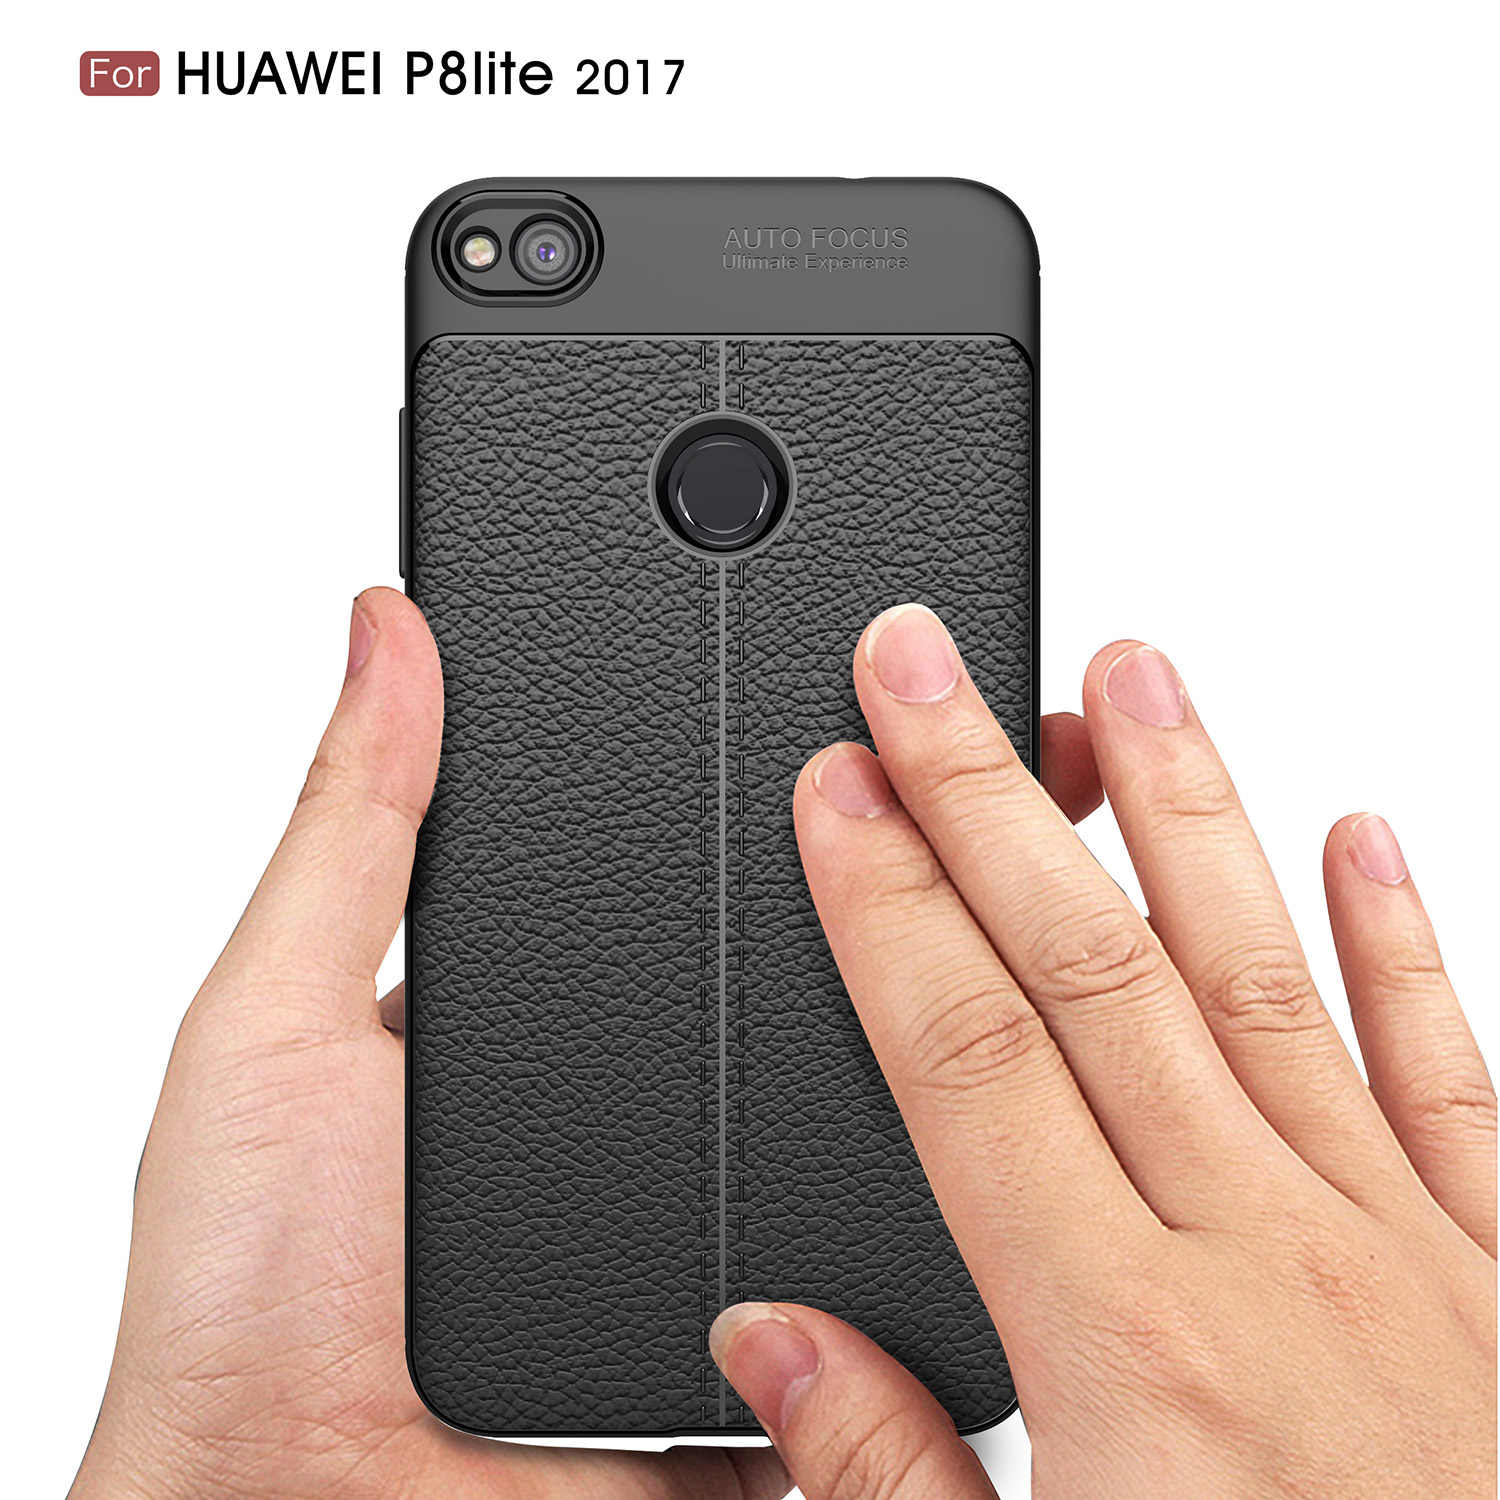 Case for Huawei P8 Lite 2017/ Huawei Honor 8 Lite Leather Style Silicone Case TPU Case Protective Cover Case Luxury fundas coque